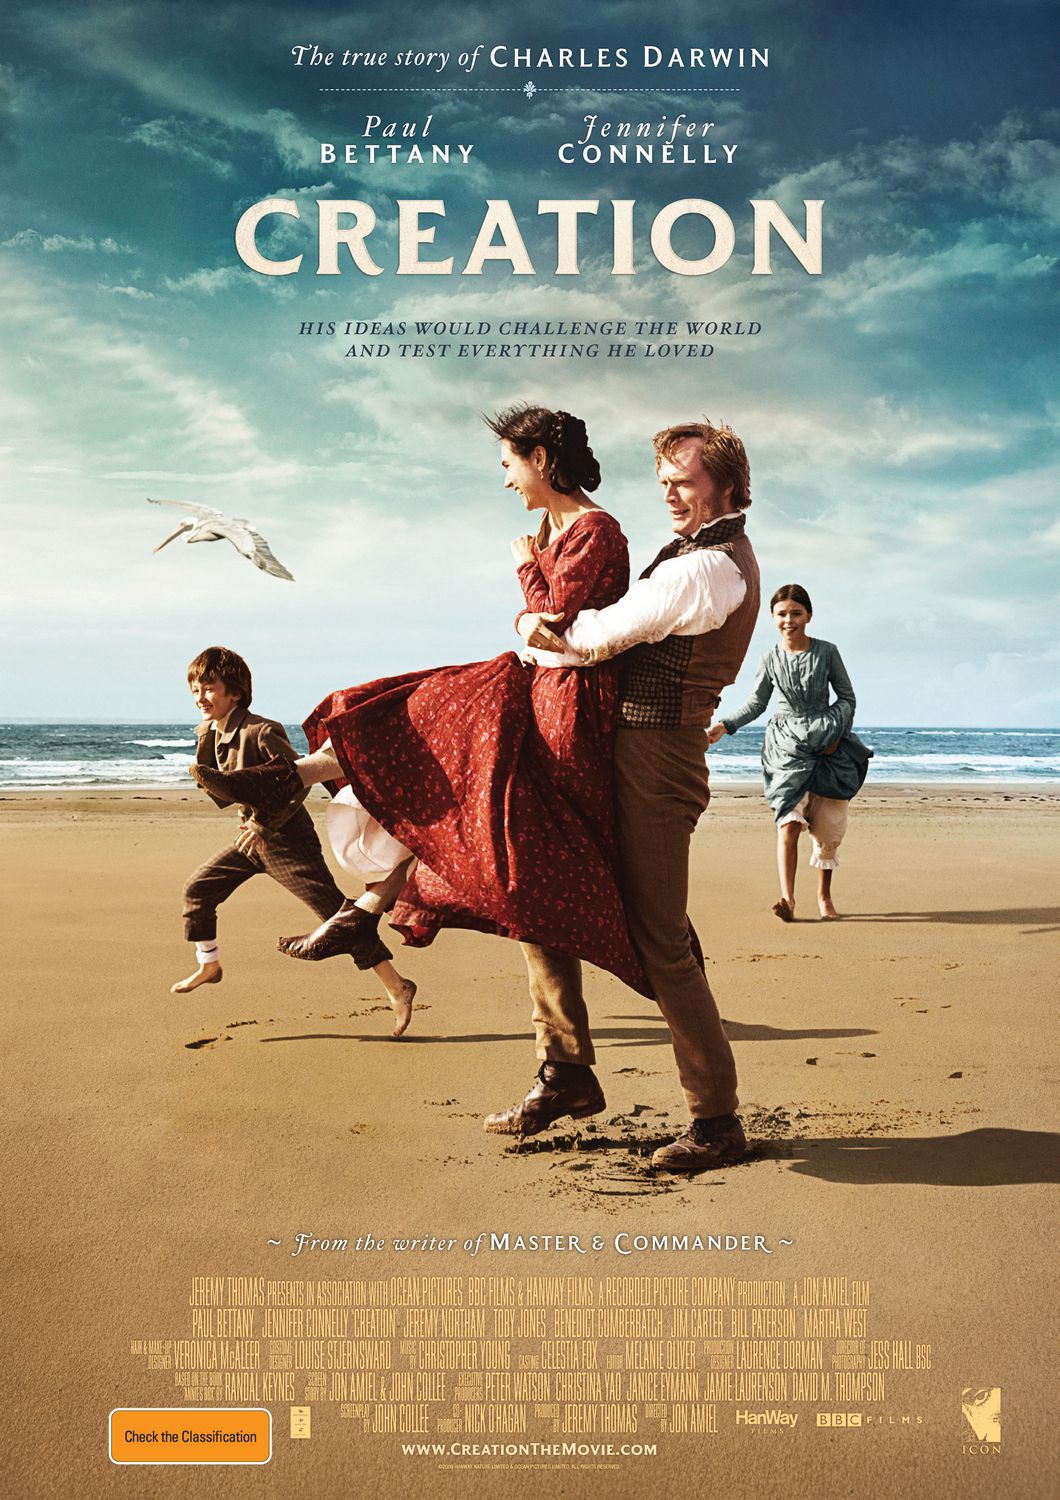 Creation - Cast: Paul Bettany, Jennifer Connelly, Martha West, Jeremy Northam - film poster